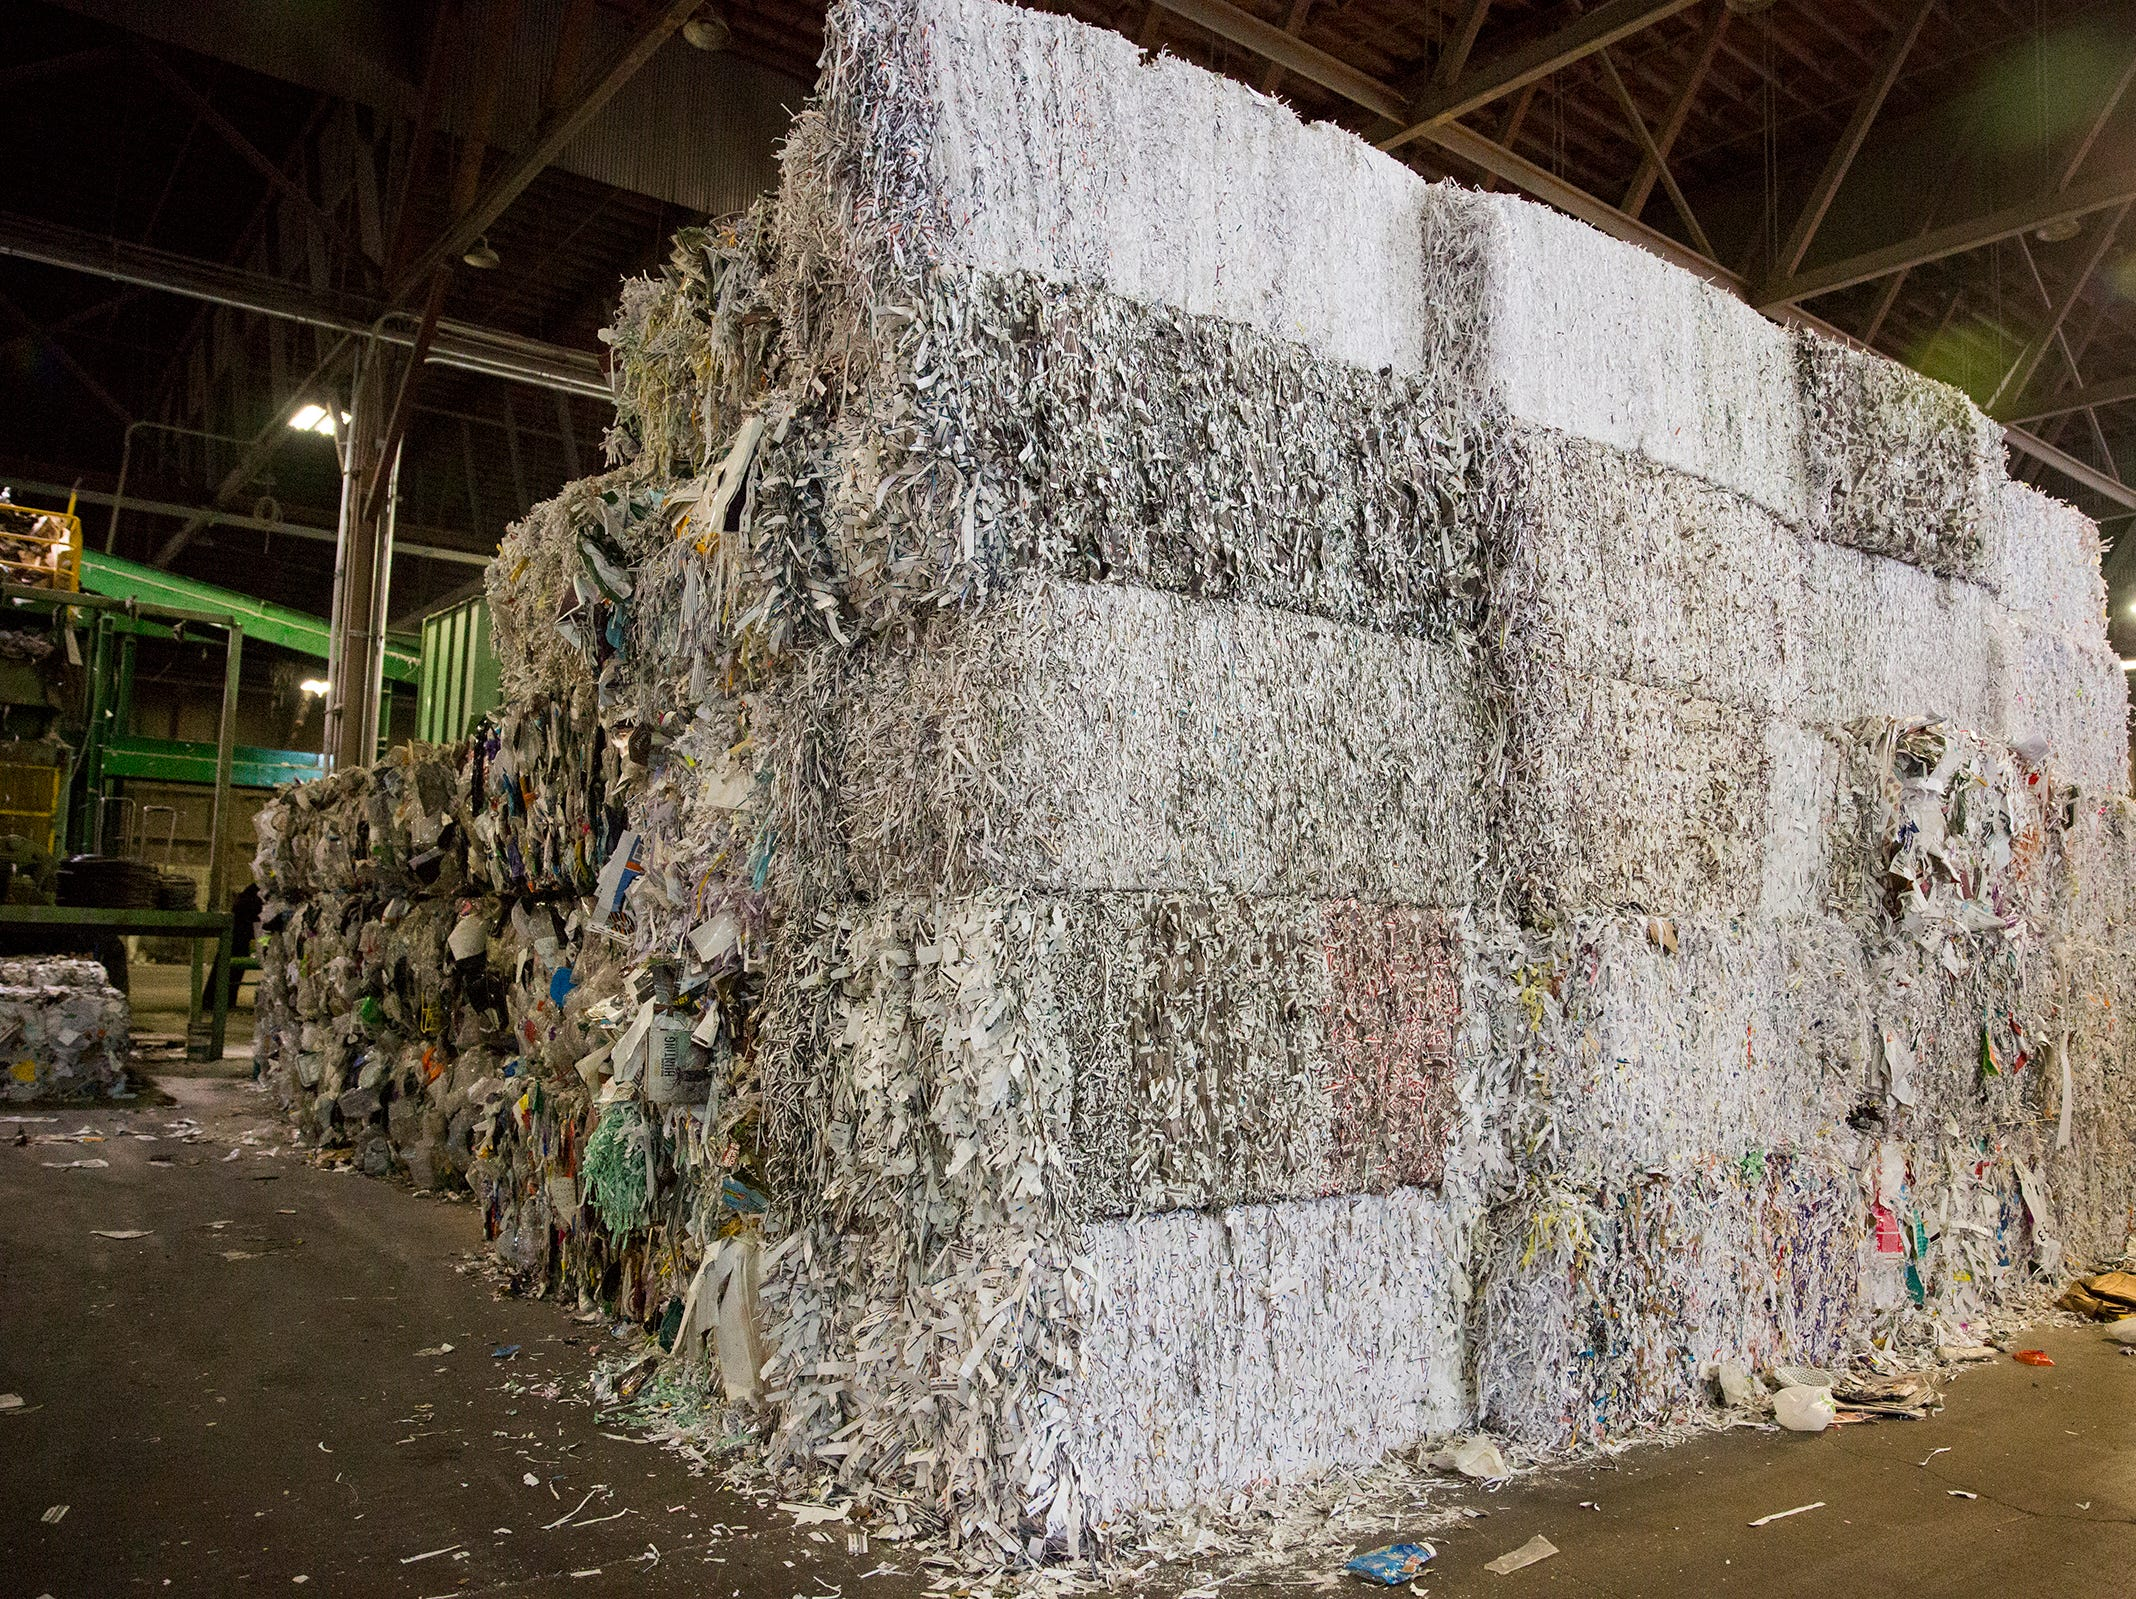 Blocks of paper are stacked at Garten Recycling in Salem on Thursday, Dec. 20, 2018. Paper recycling is not as common as it used to be.